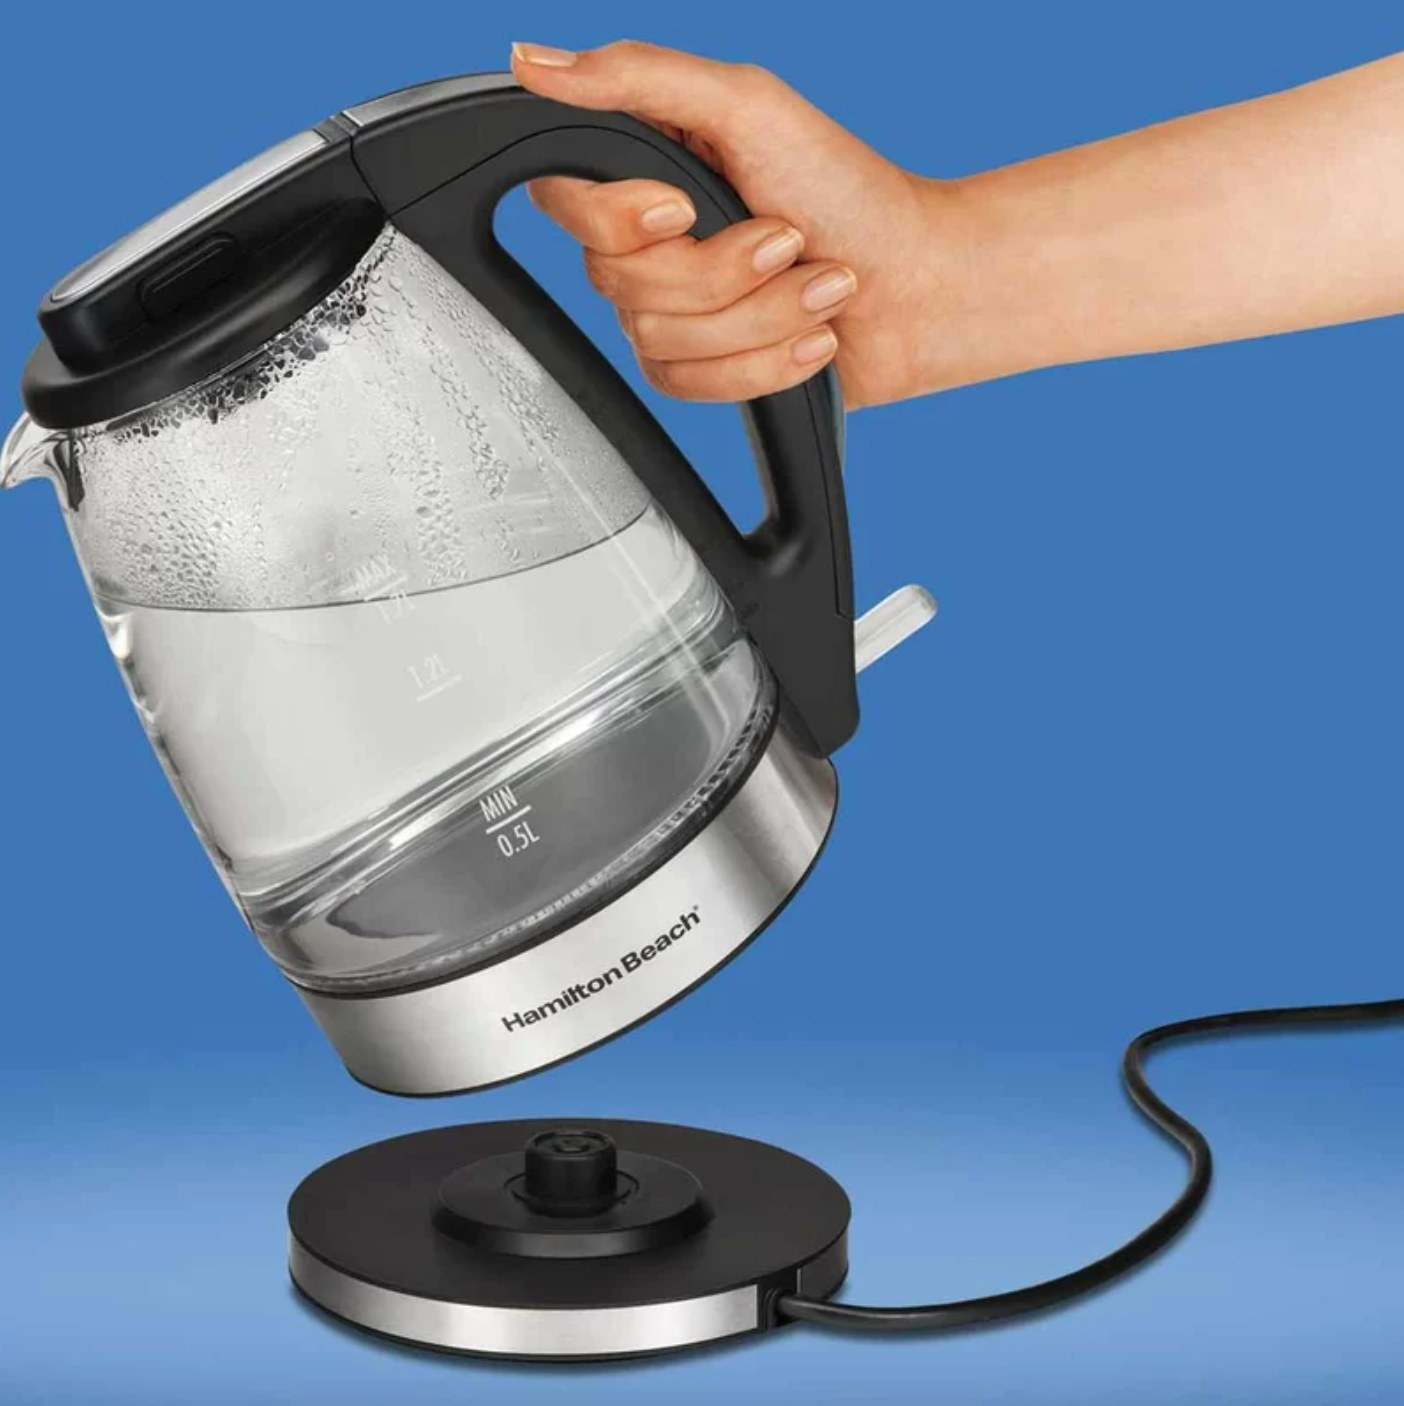 The glass electric kettle with a black charging stand